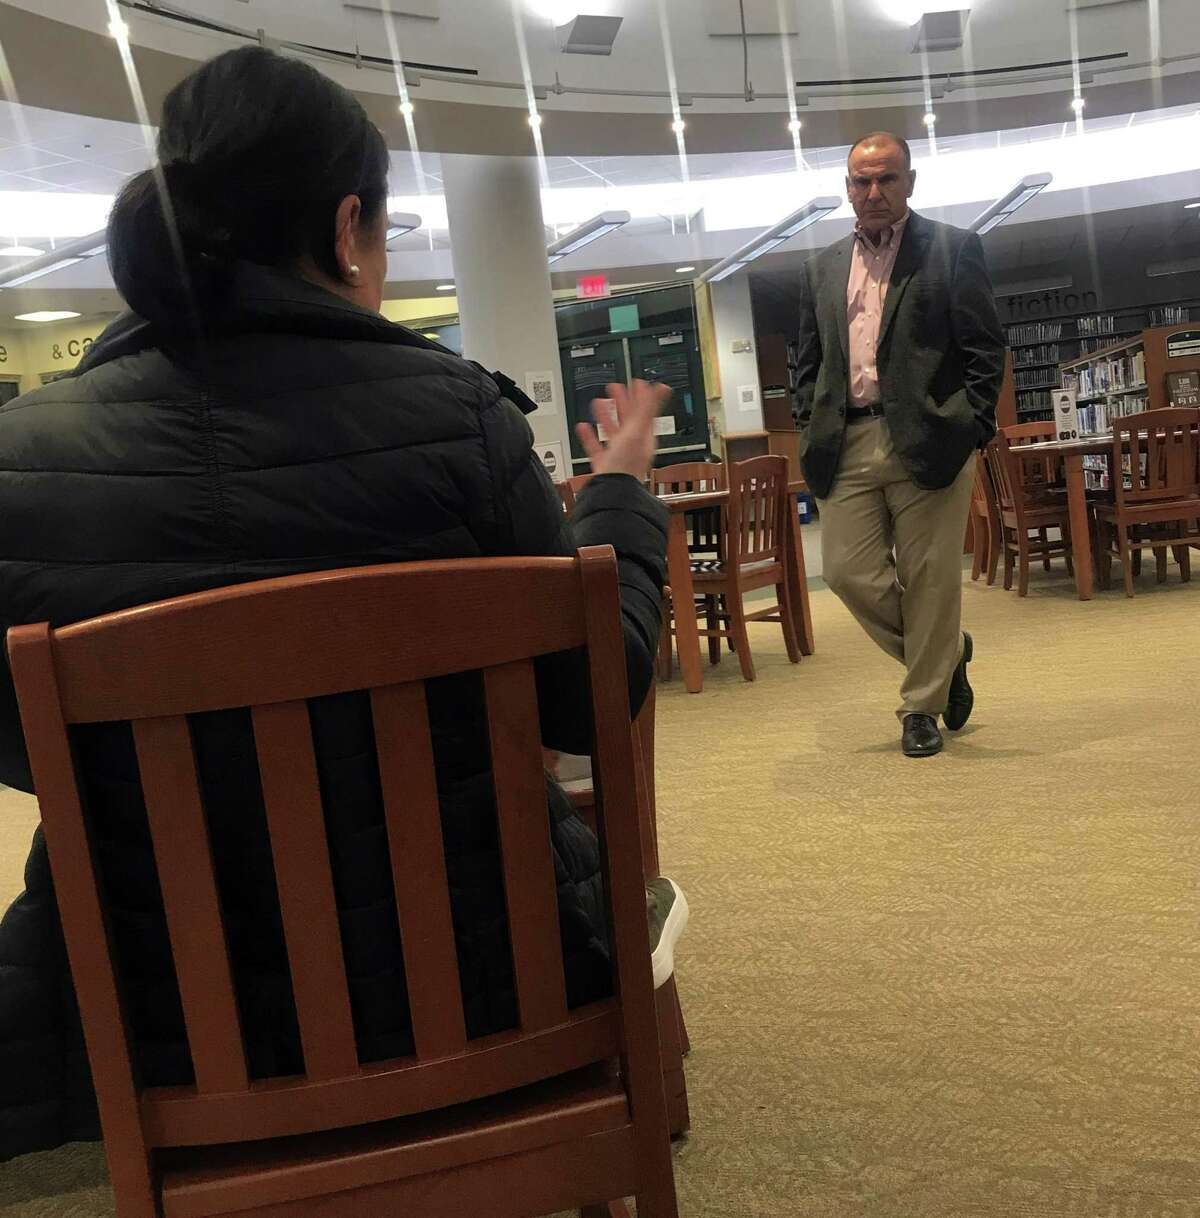 Joseph Erardi, of JE Consulting, fields questions from parents in Staples High School's library. Taken Nov. 25, 2019 in Westport, Conn.